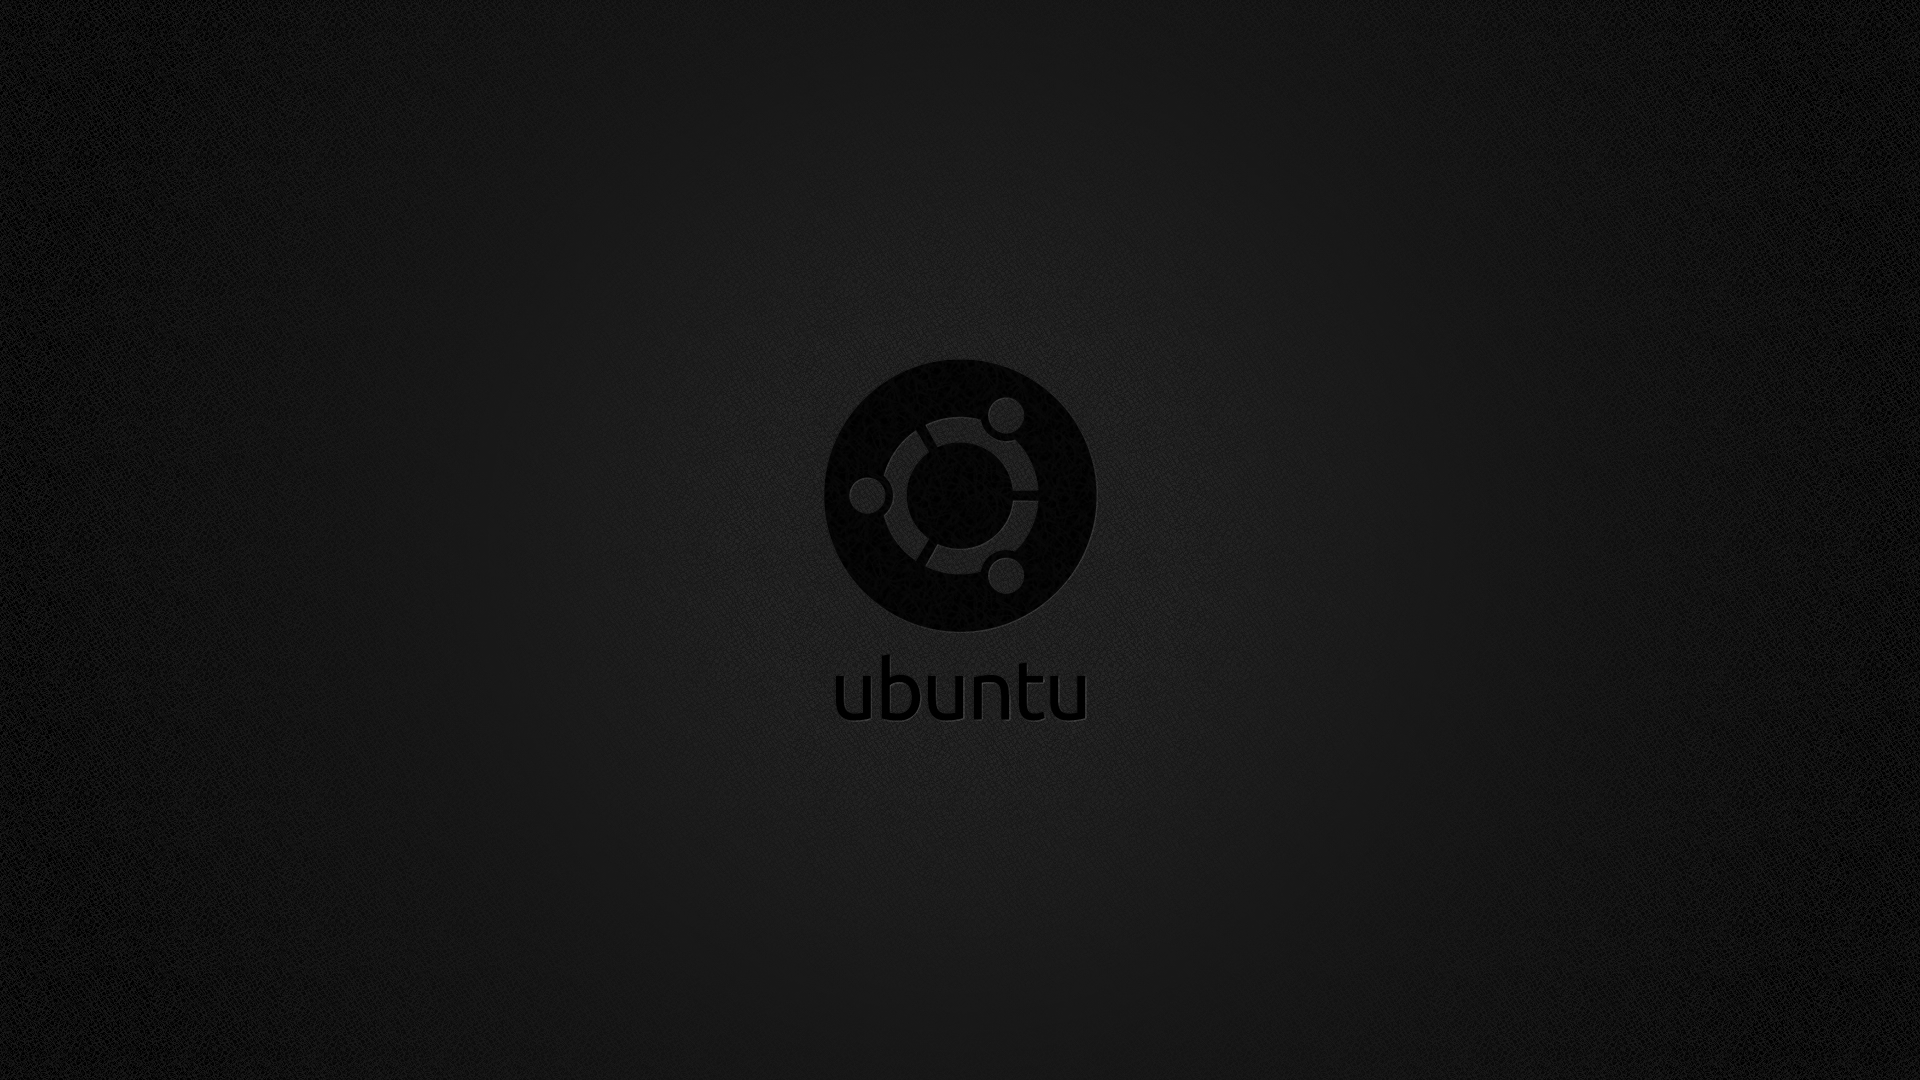 Ubuntu Dark Wallpaper - WallpaperSafari Ubuntu Logo Black